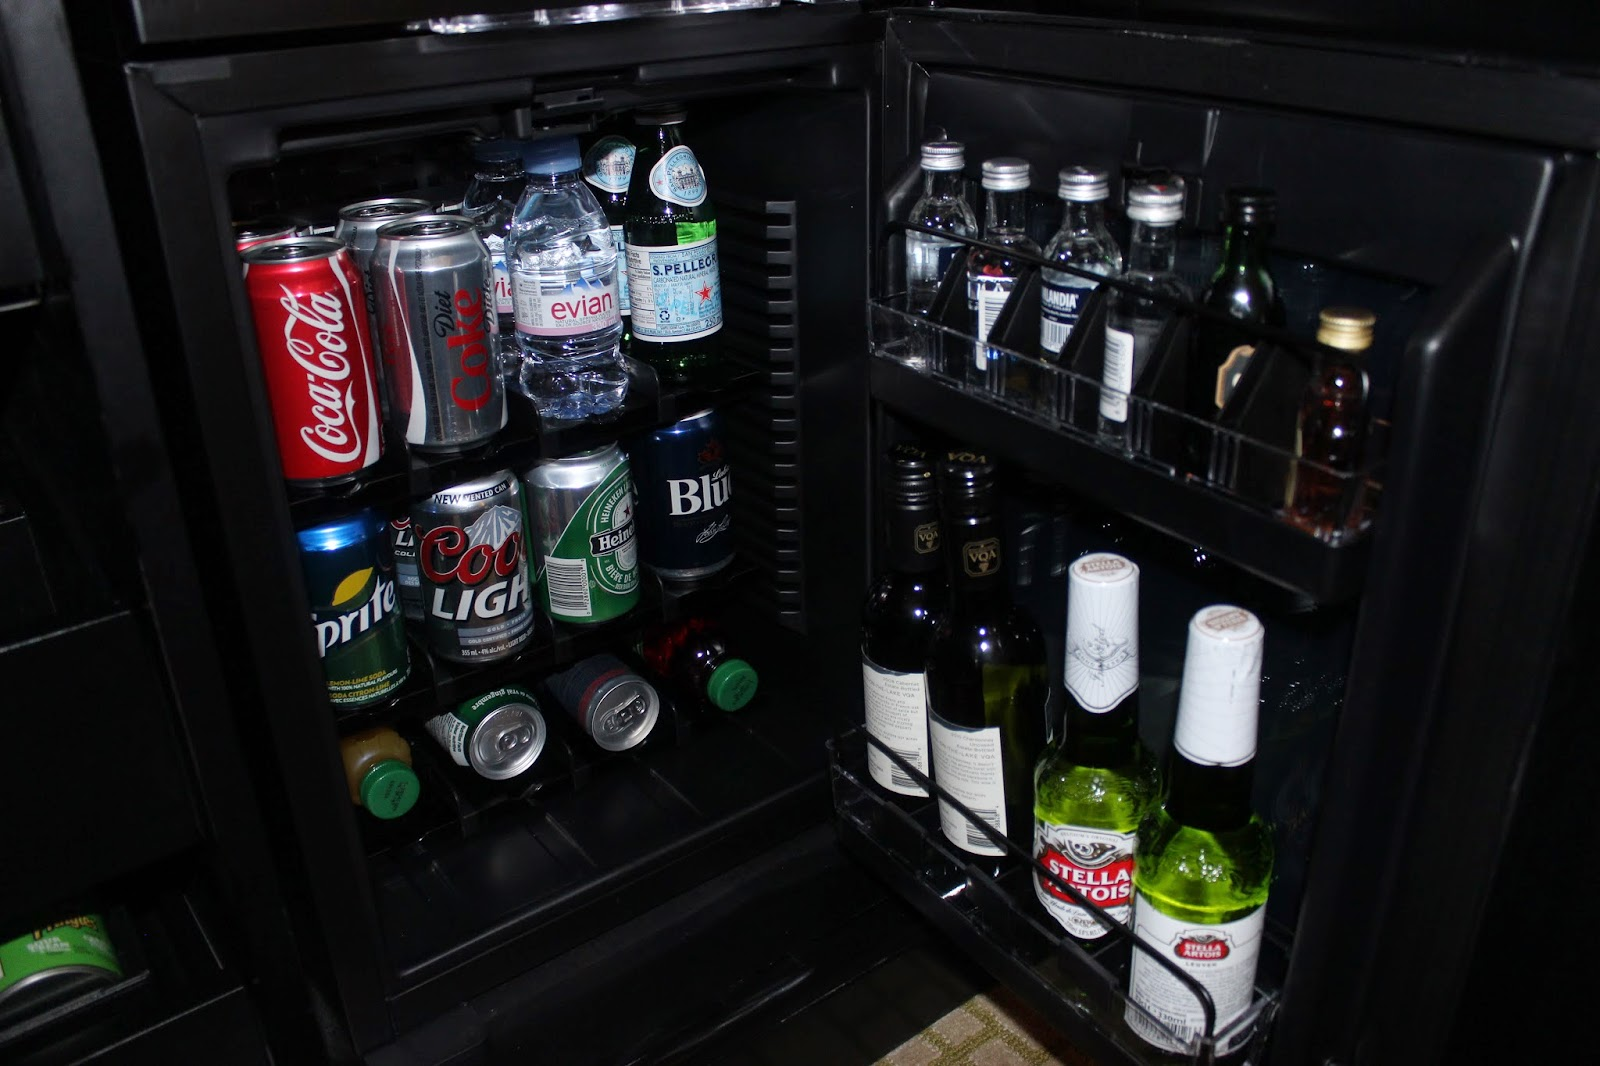 Fairmont Chateau Laurier Mini Fridge